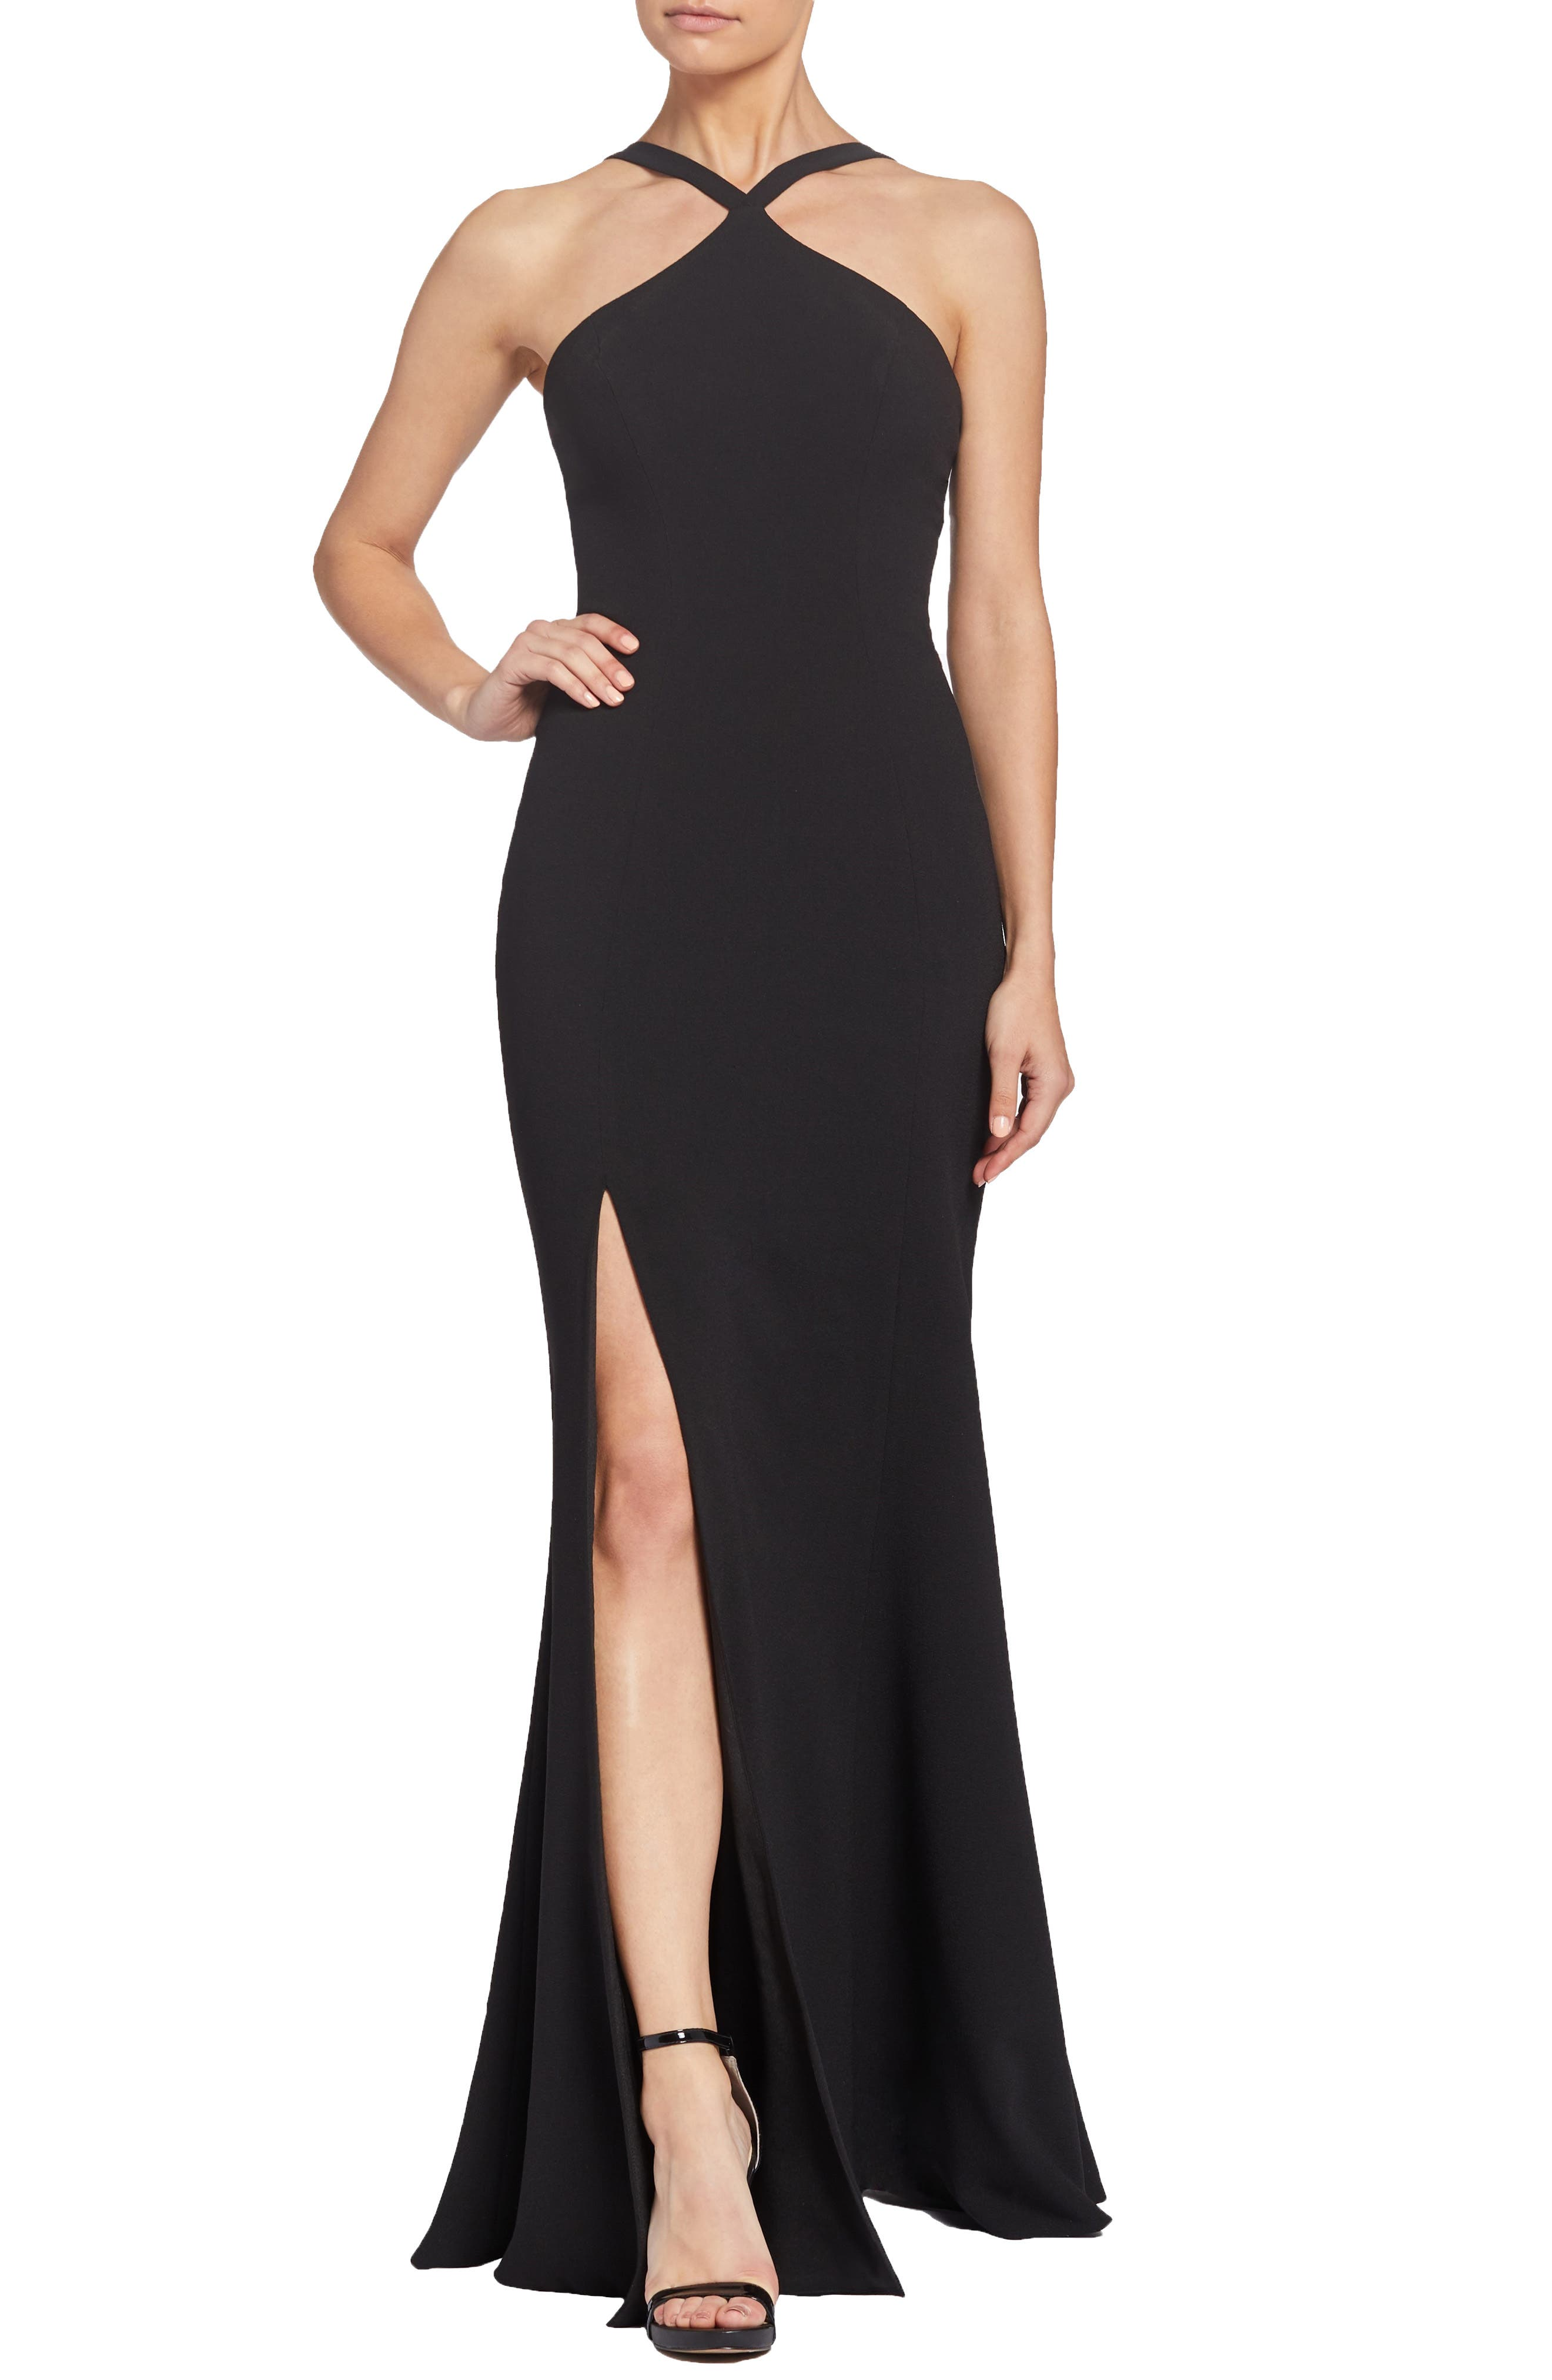 Brianna Halter Style Trumpet Gown,                             Main thumbnail 1, color,                             BLACK